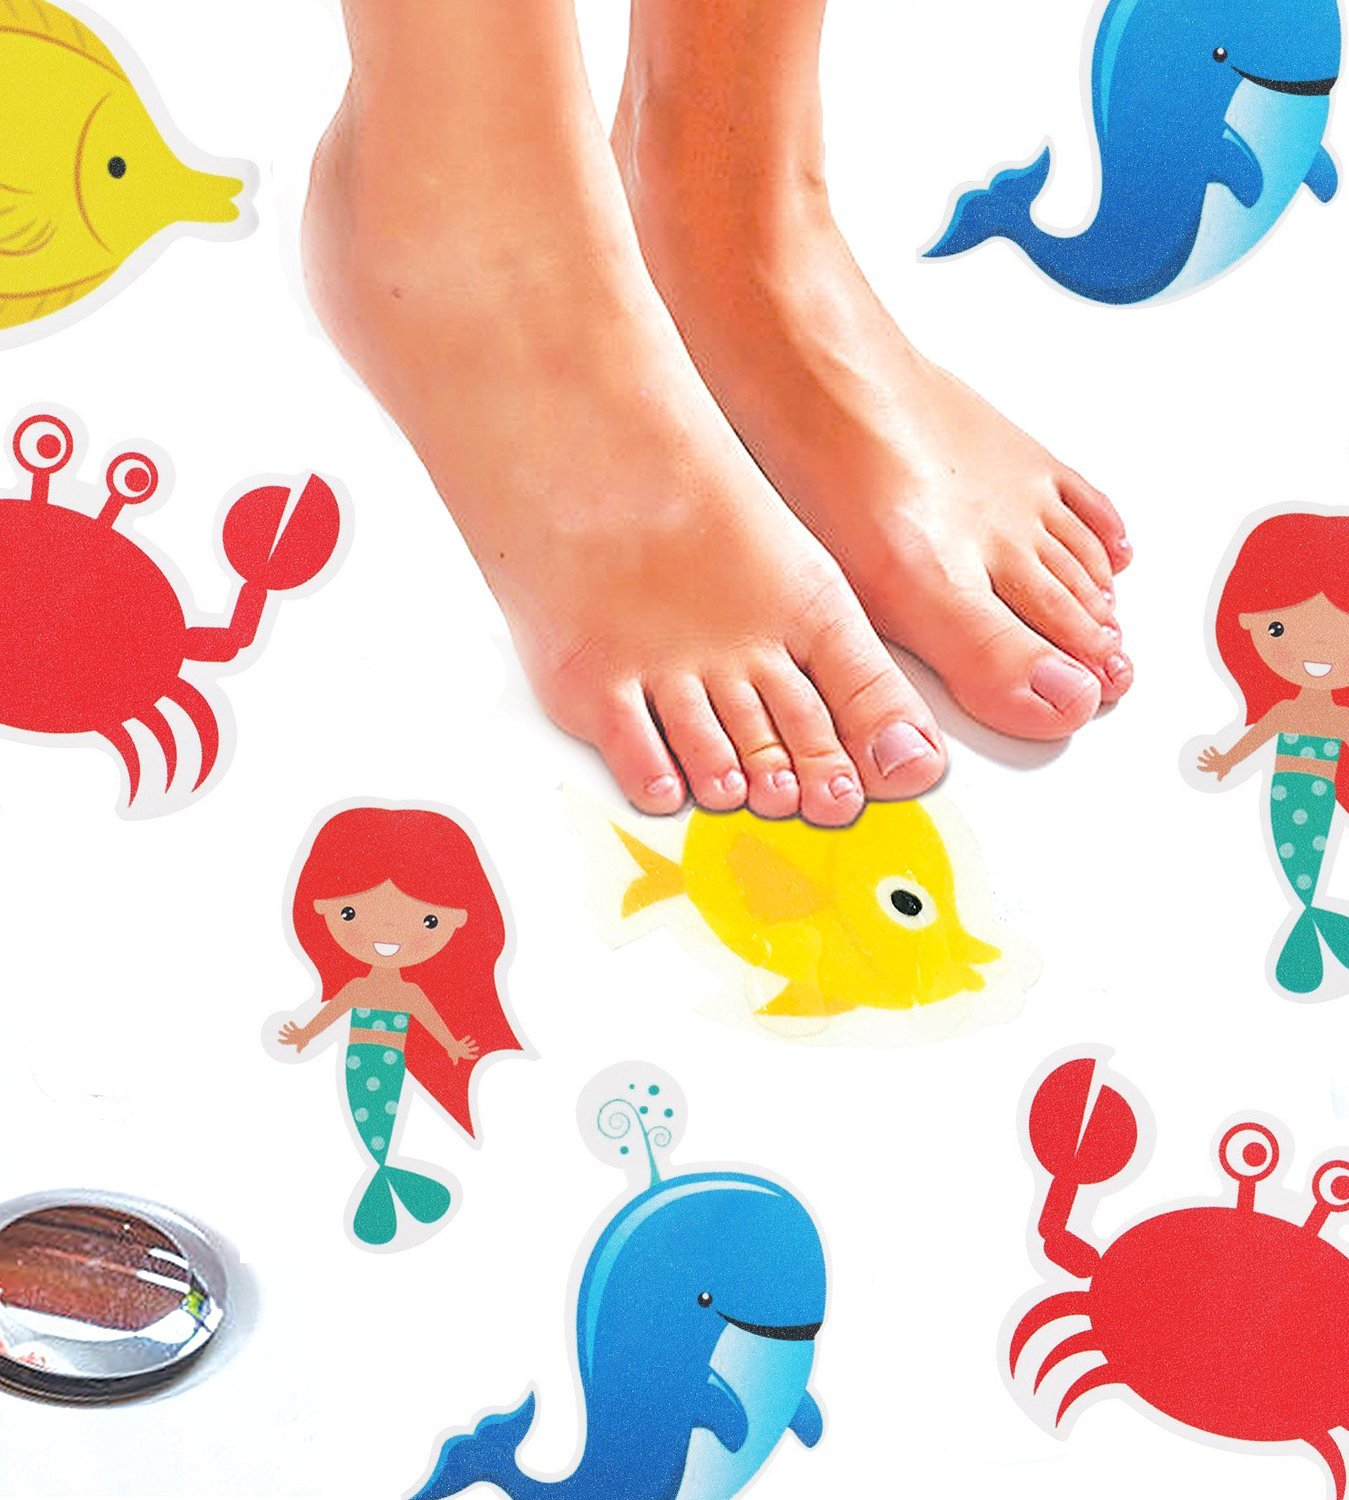 Monkey Home Non-Slip Bathtub Stickers by Pack of 8 Large Sea Creature Decal Treads. Best Adhesive Safety Anti-Slip Appliques for Bath Tub and Shower Surfaces Umiss Paper